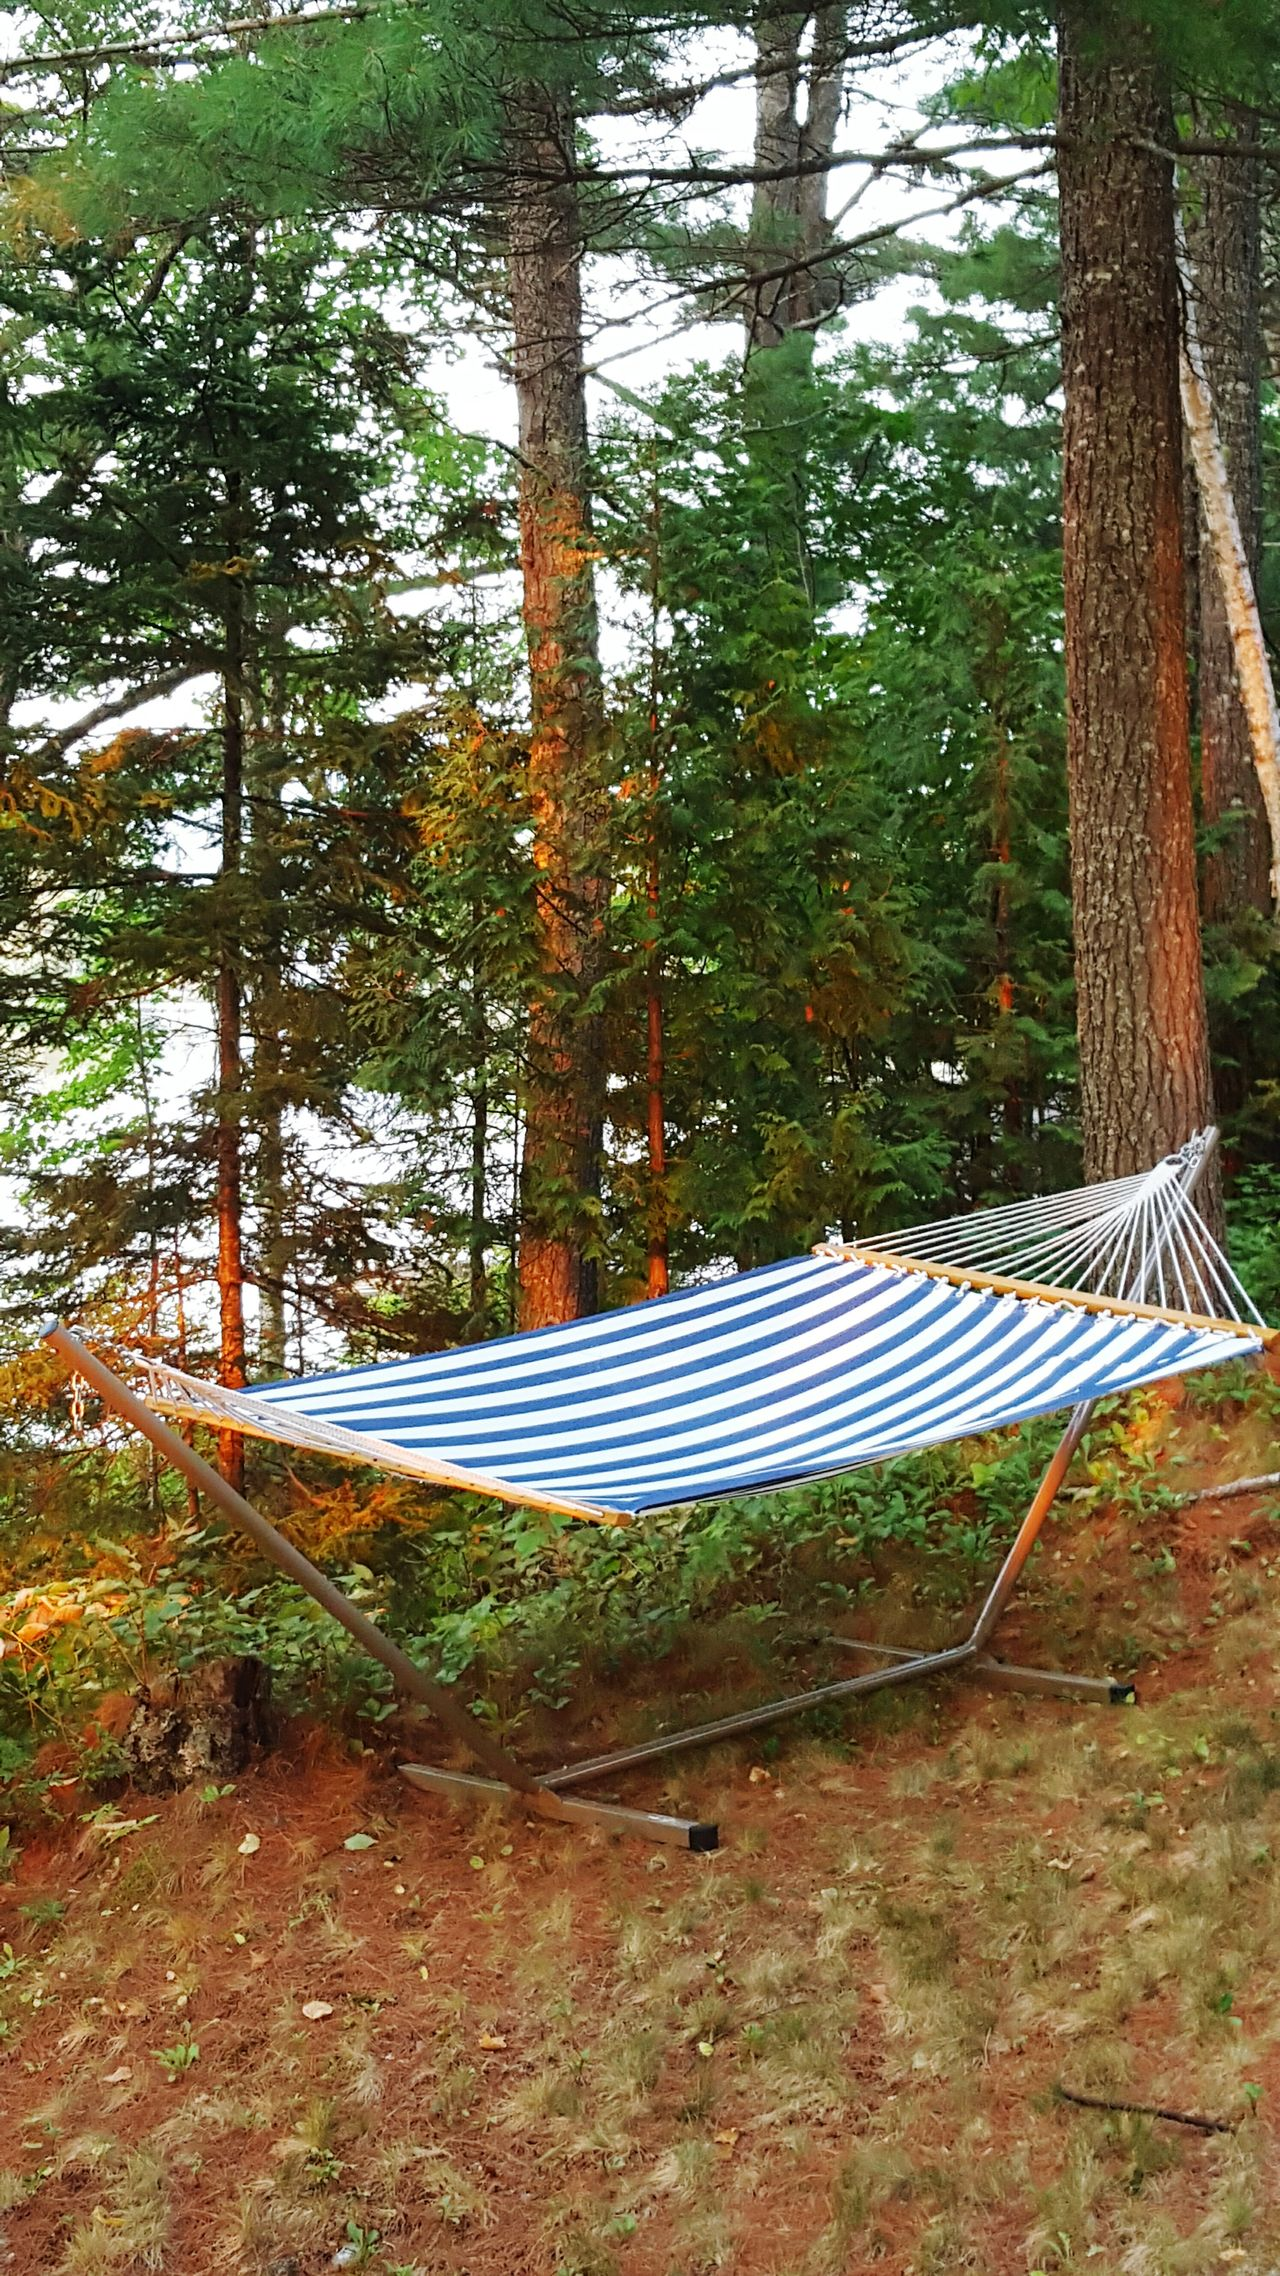 My Afternoon Hammock Hammocking Maine The Way Life Should Be Mainephotography Mainelife Hammocklife Sunset✨trees✨ Maine Hammock Hammock Time